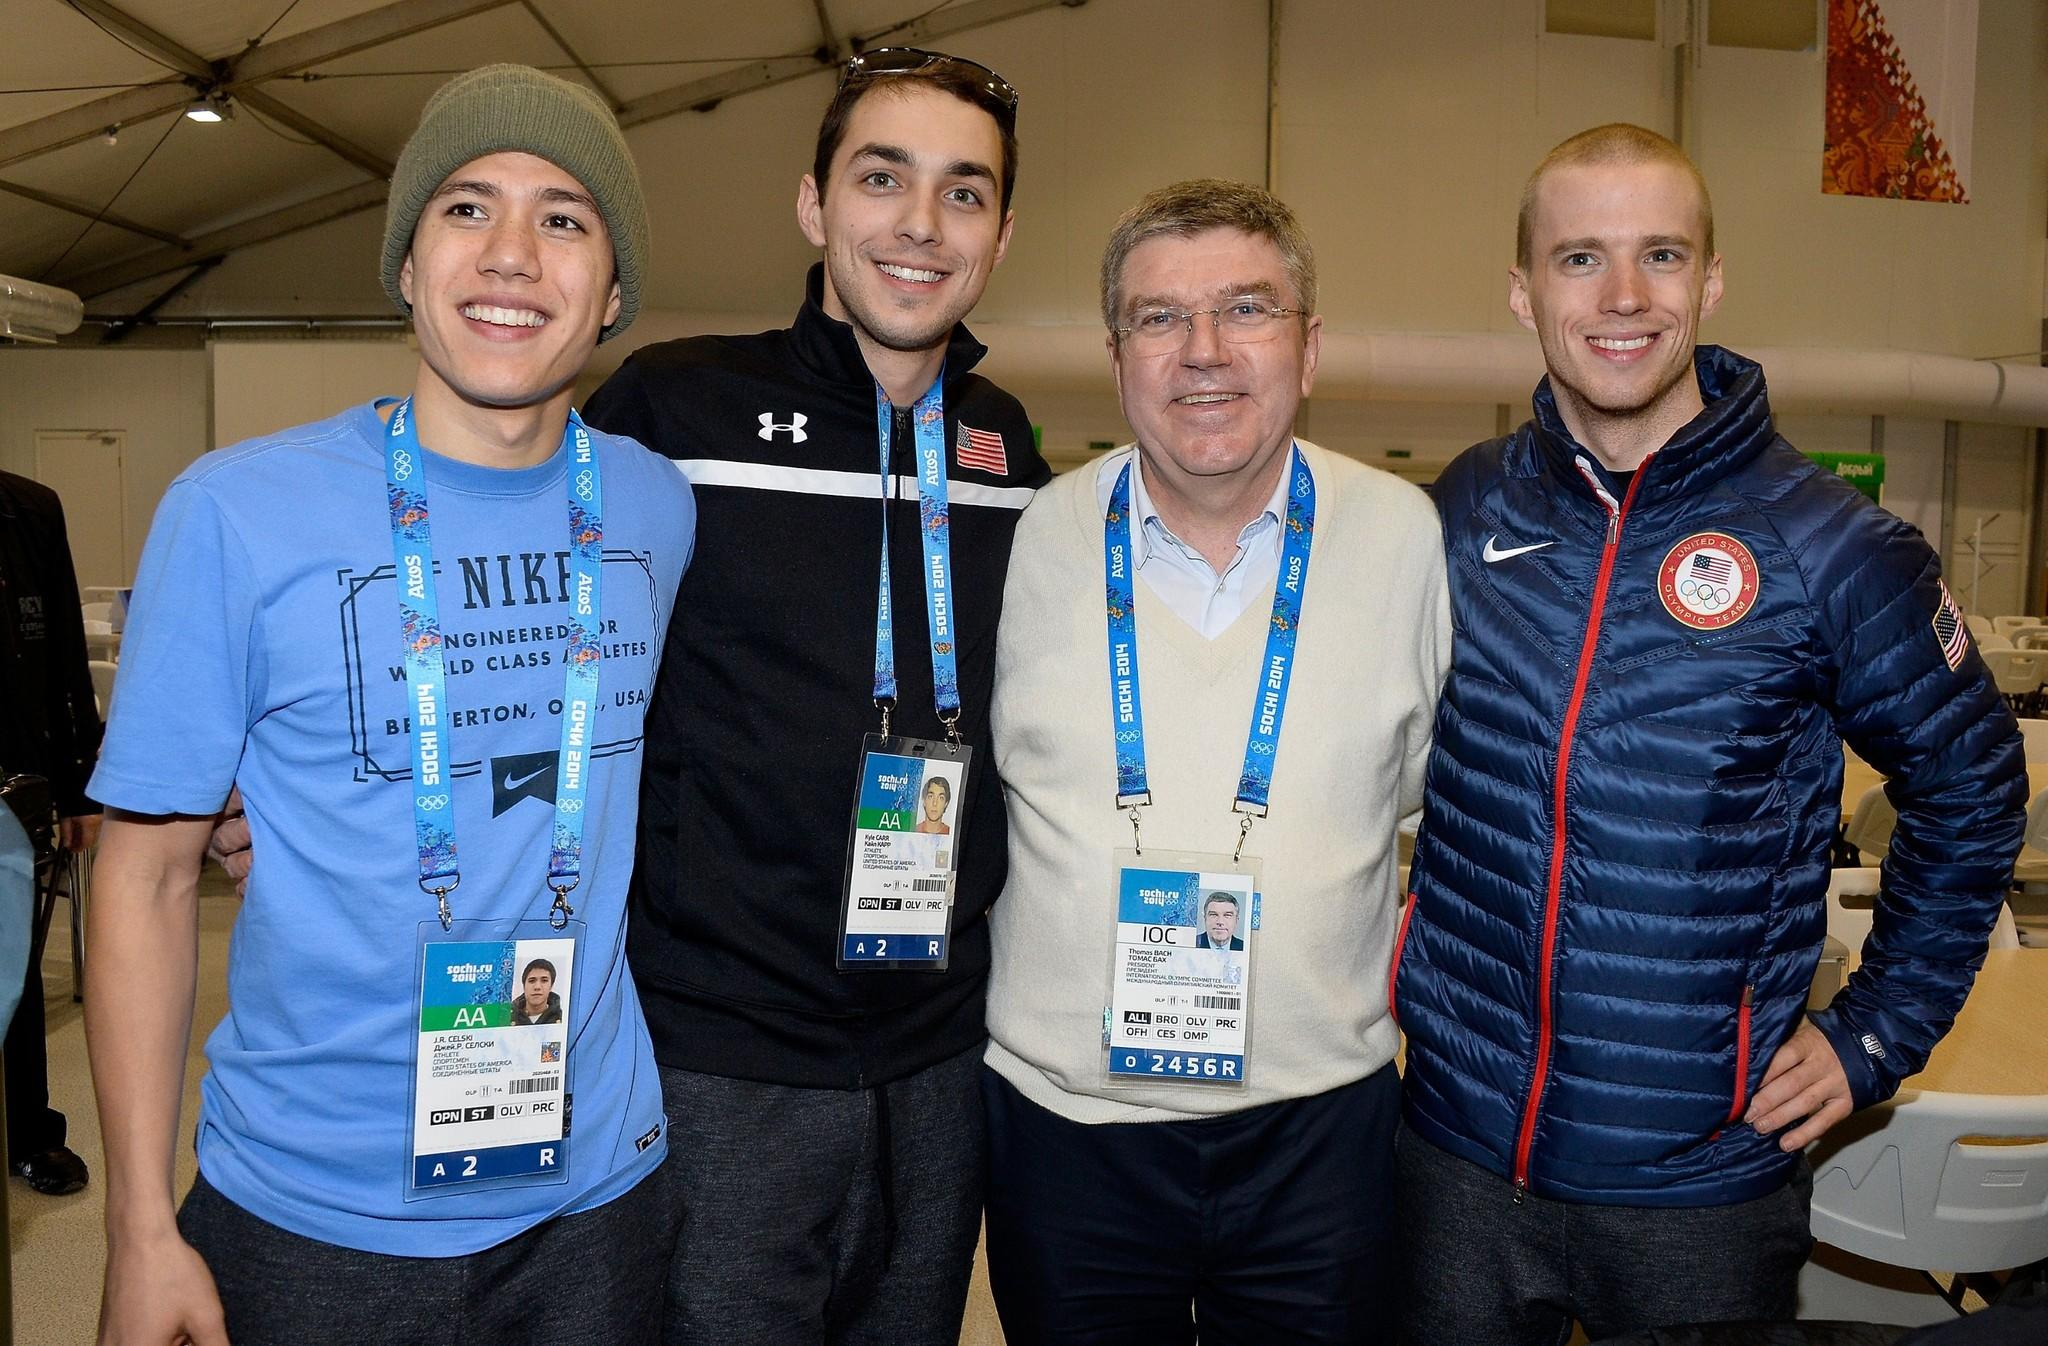 International Olympic Committee President Thomas Bach (white shirt) poses with U.S. speed skaters (L-to-R) J.R. Celski, Kyle Carr and Patrick Meek at the coastal Olympic Village in Sochi.